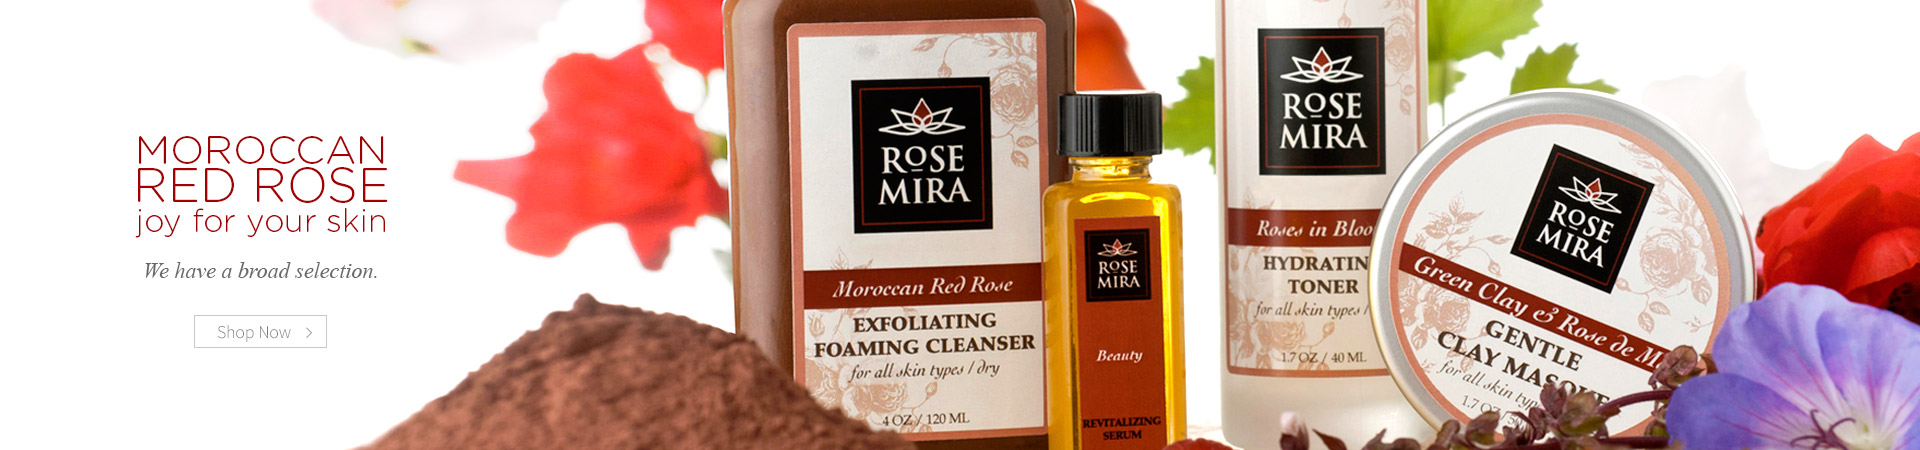 Moroccan Red Rose-a joy for your skin